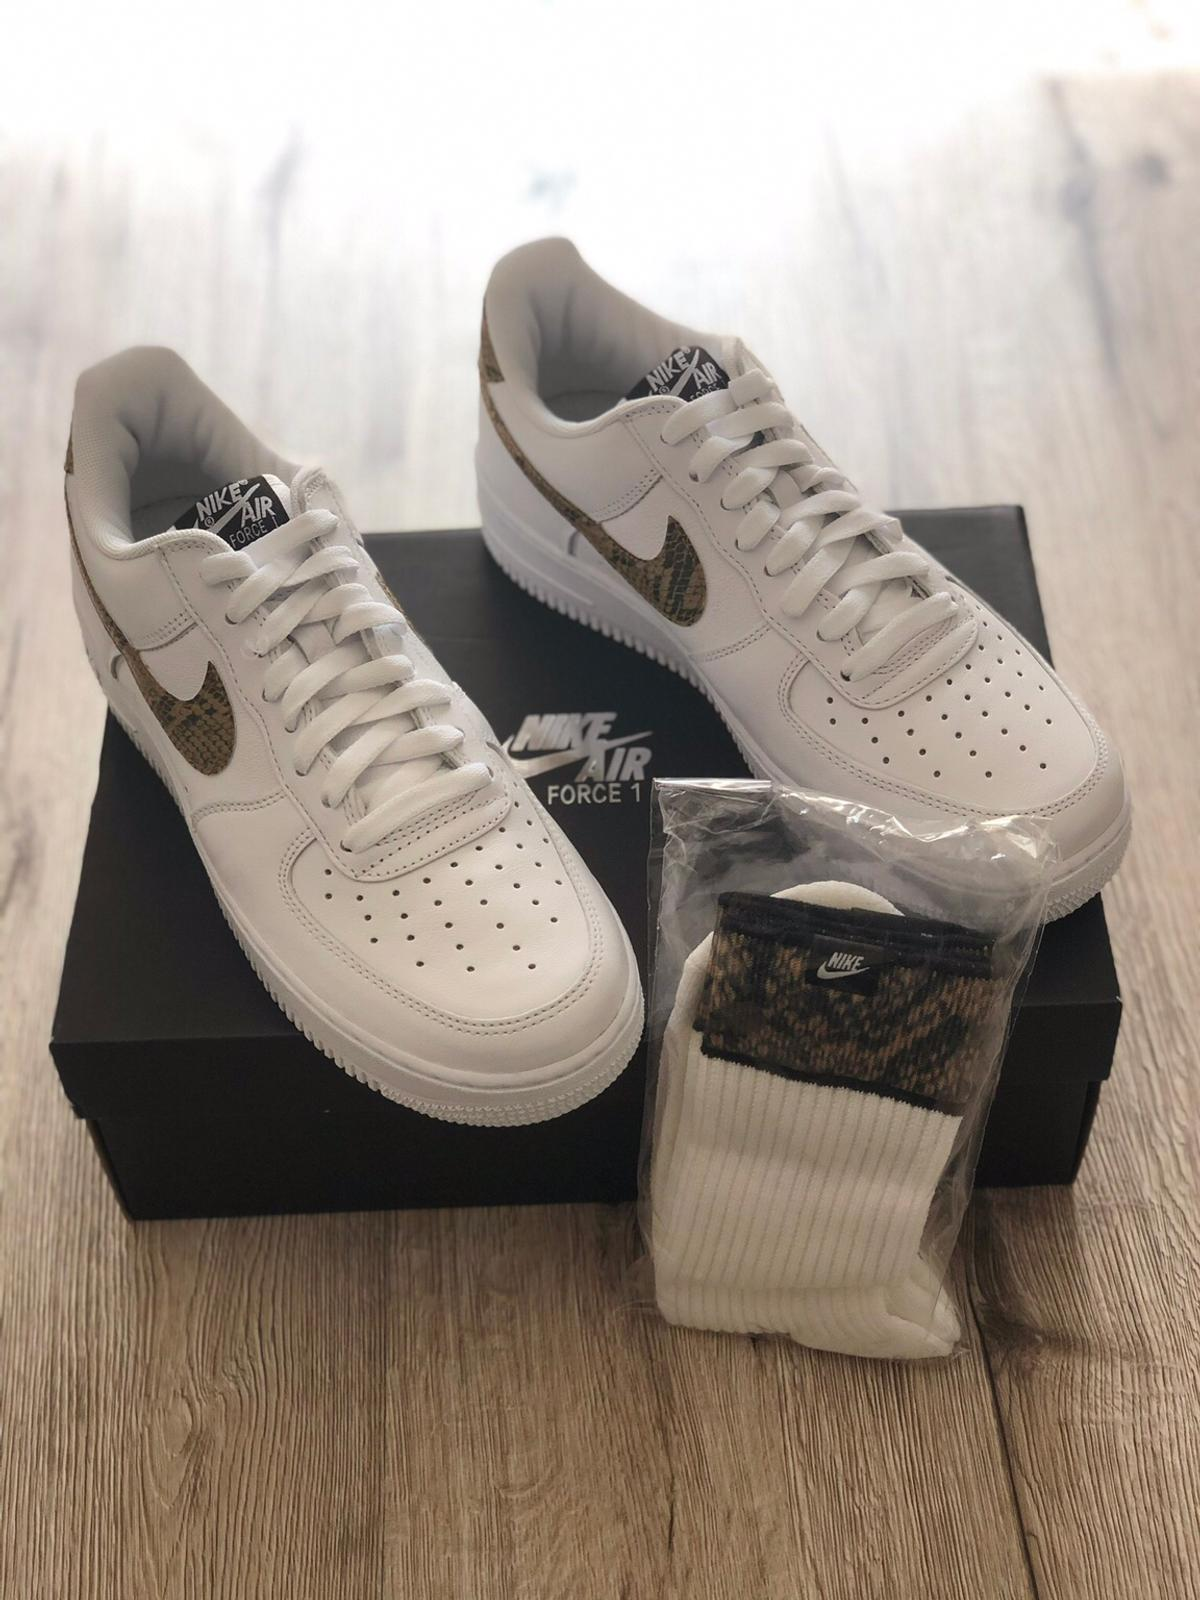 Nike Air Force 1 Low Ivory Snake in 44357 Dortmund for